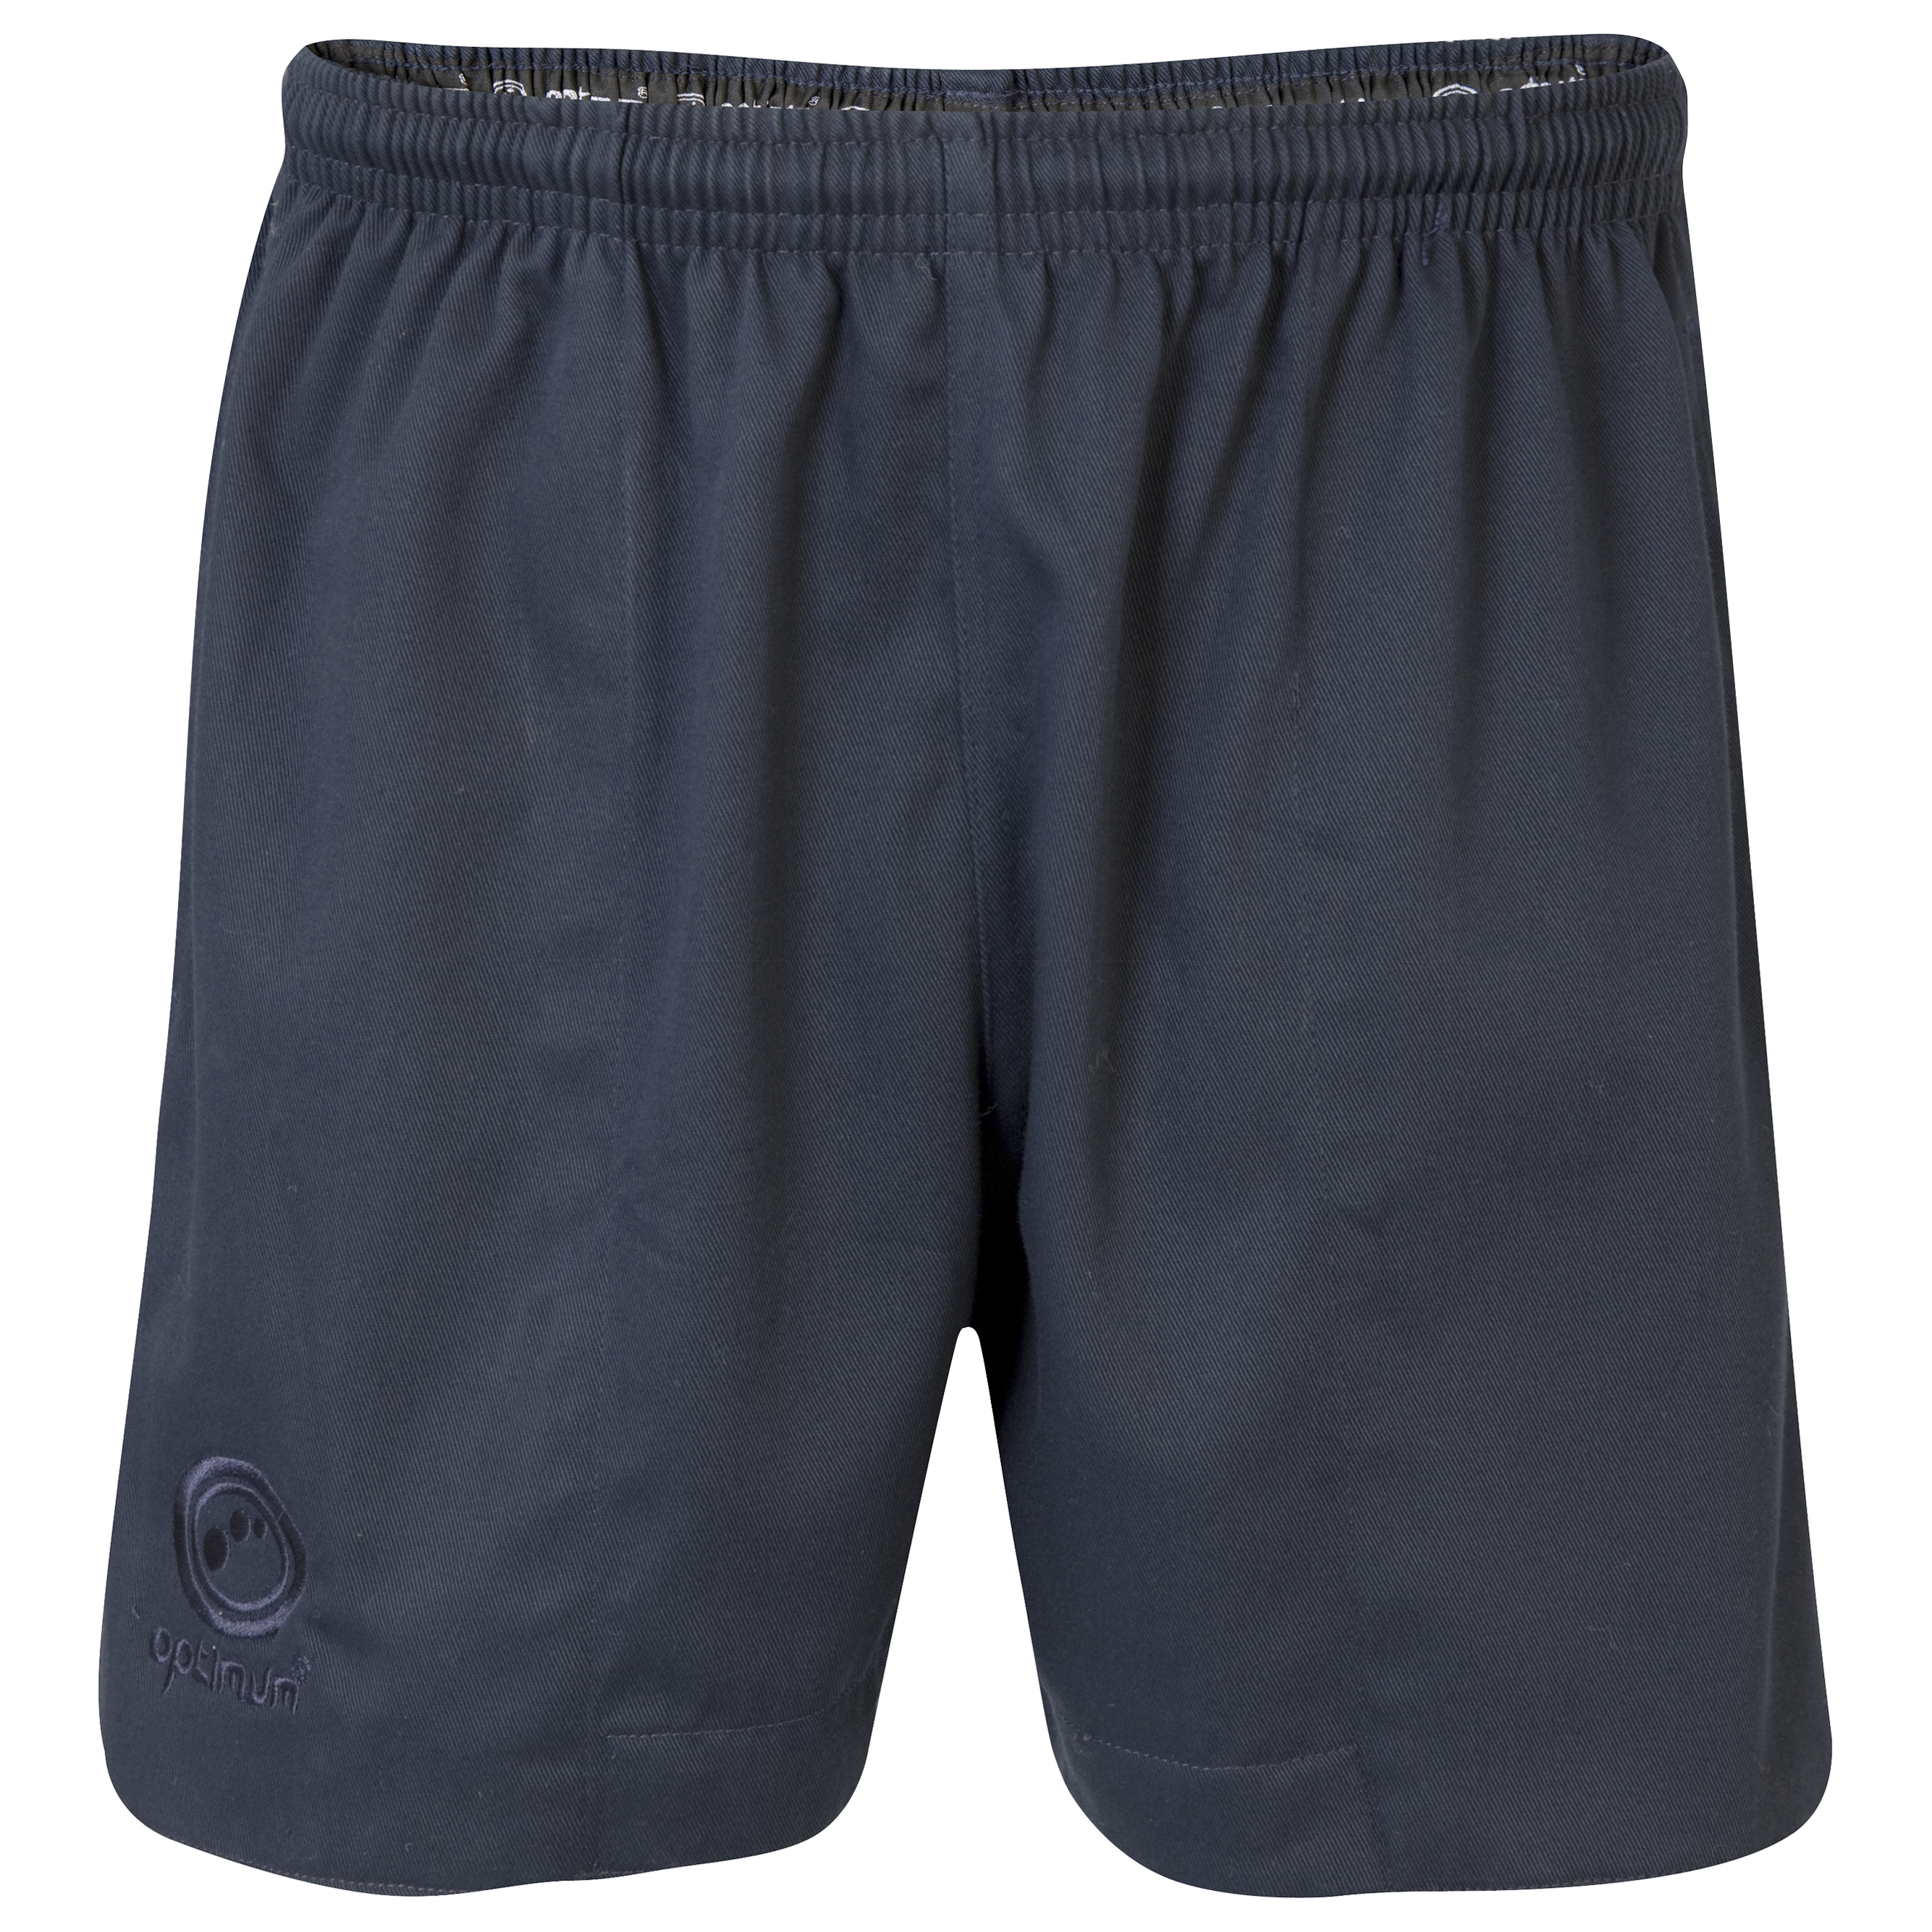 Optimum Auckland Rugby Shorts - Navy/Orange - Kids